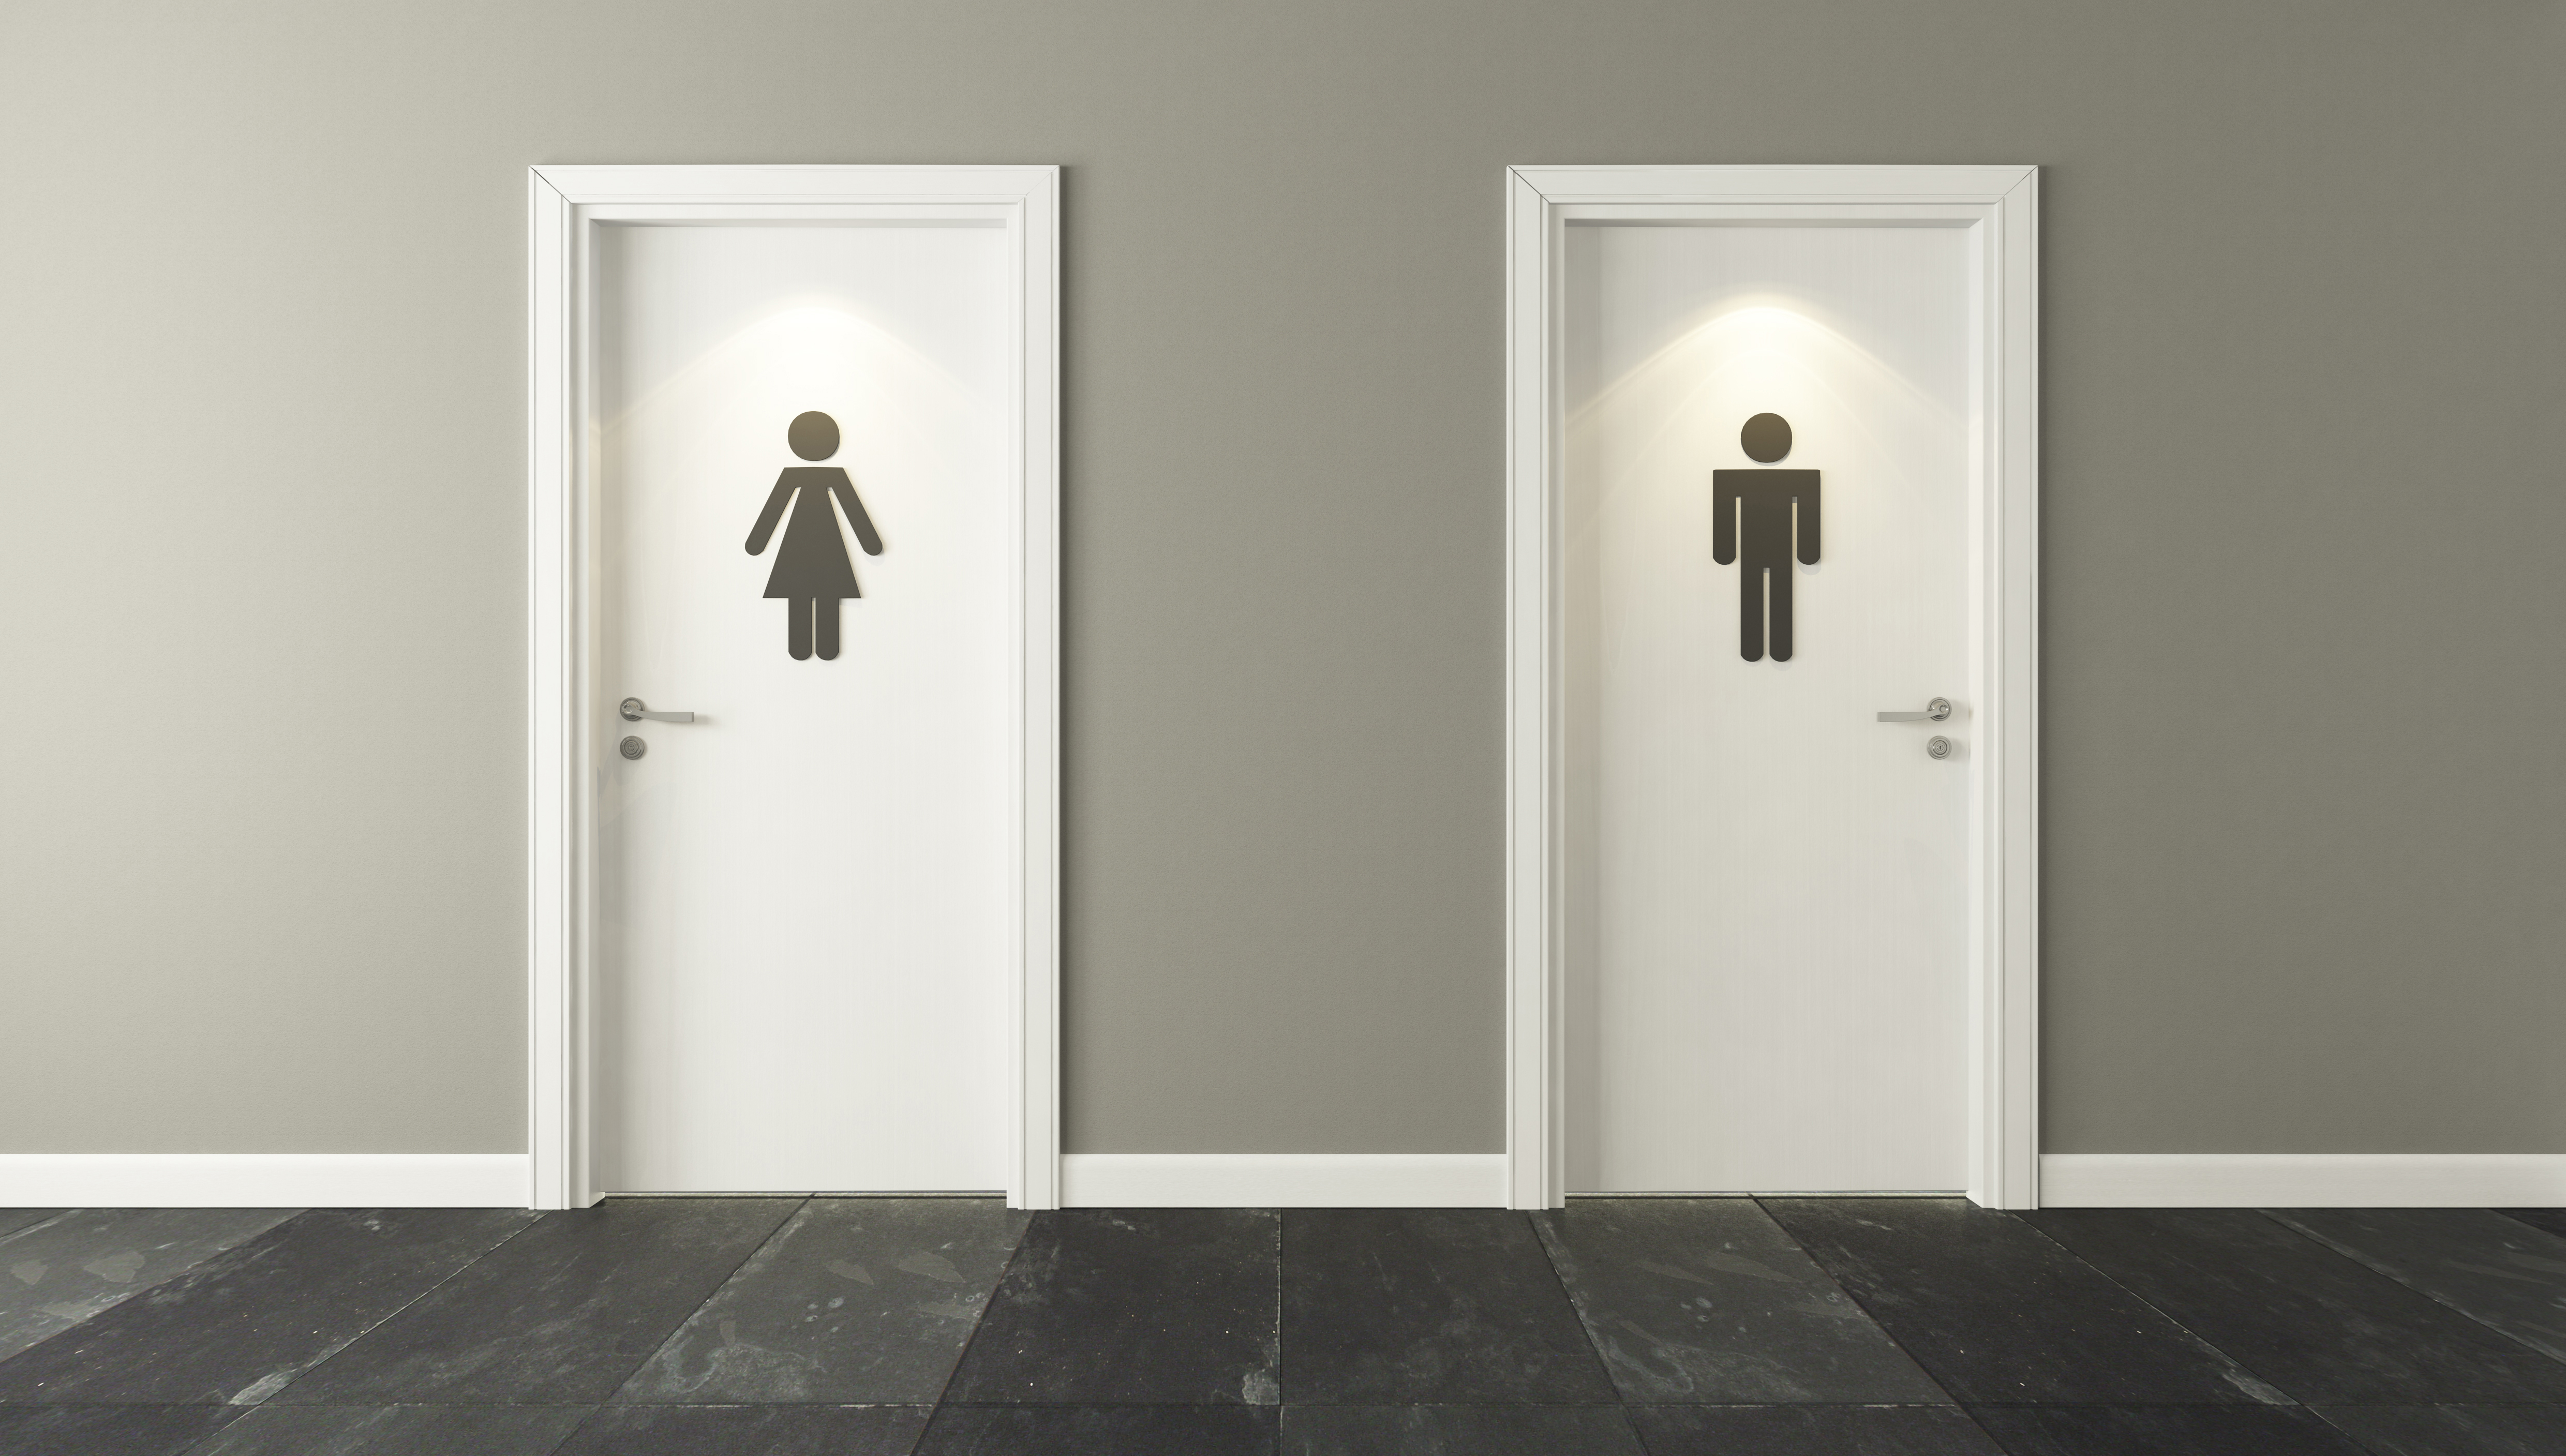 4 behavioral changes to tame urinary incontinence - Harvard Health